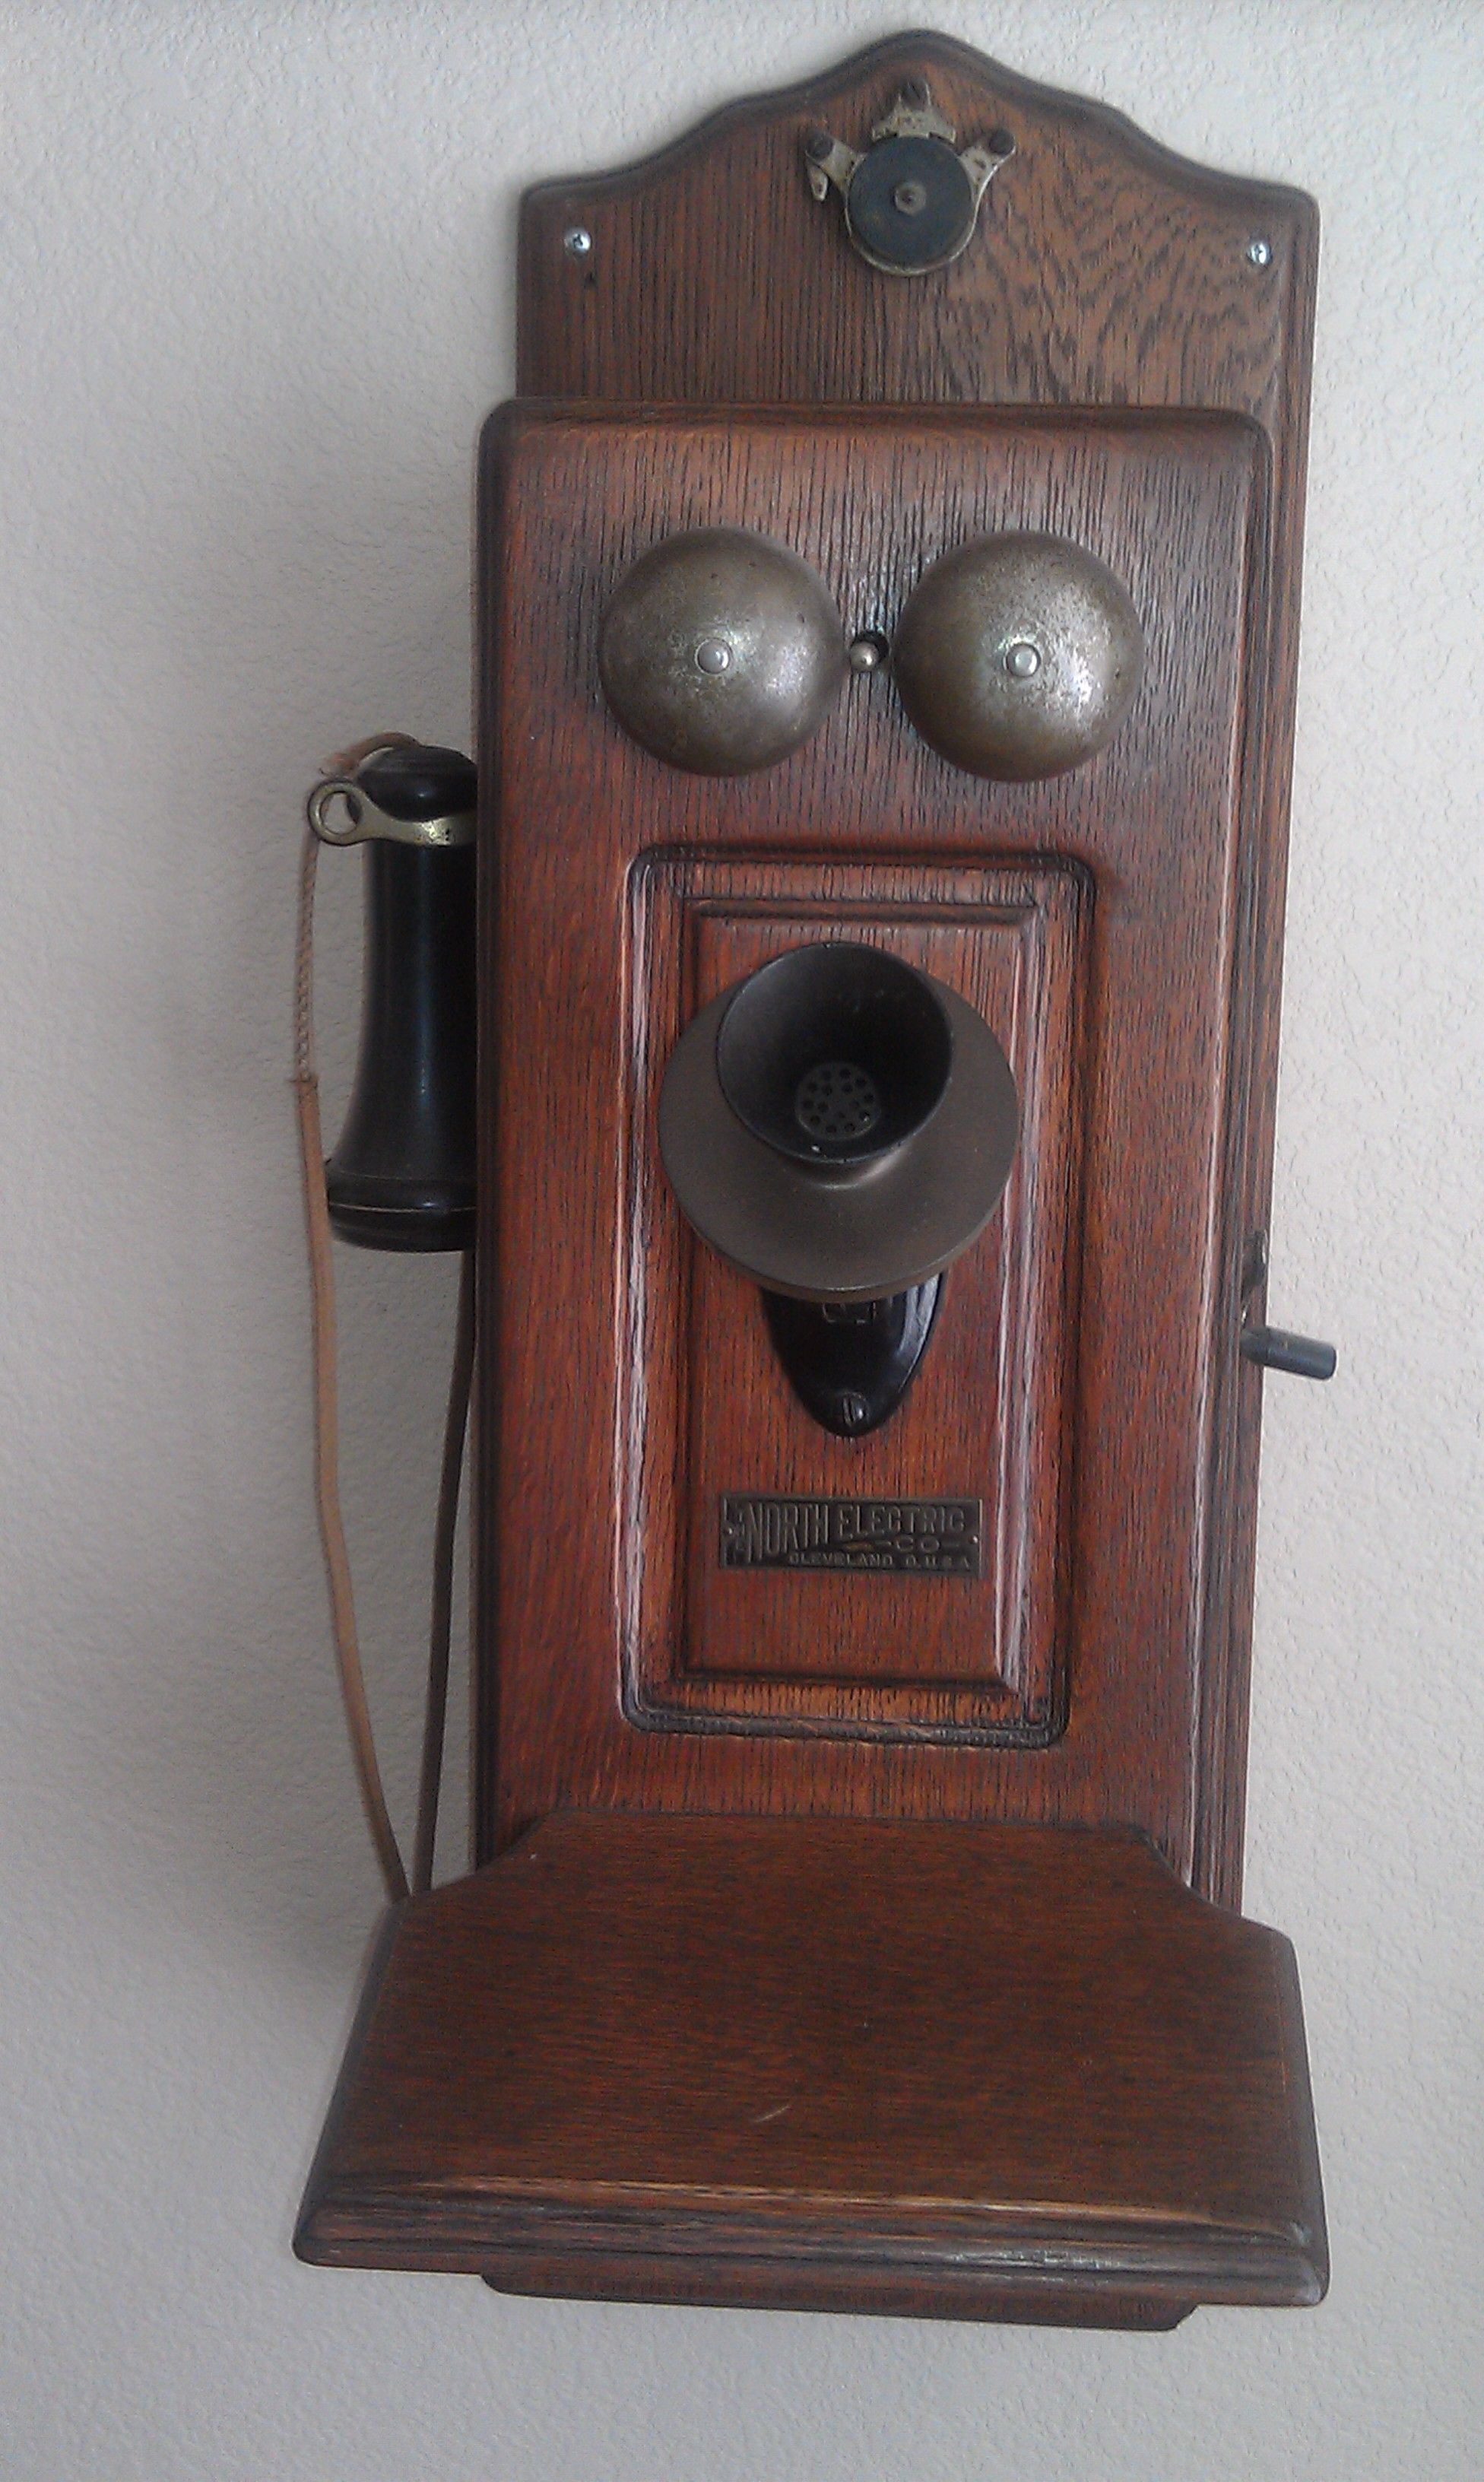 1904 North Electric Co Phone This Was Our First Telephone